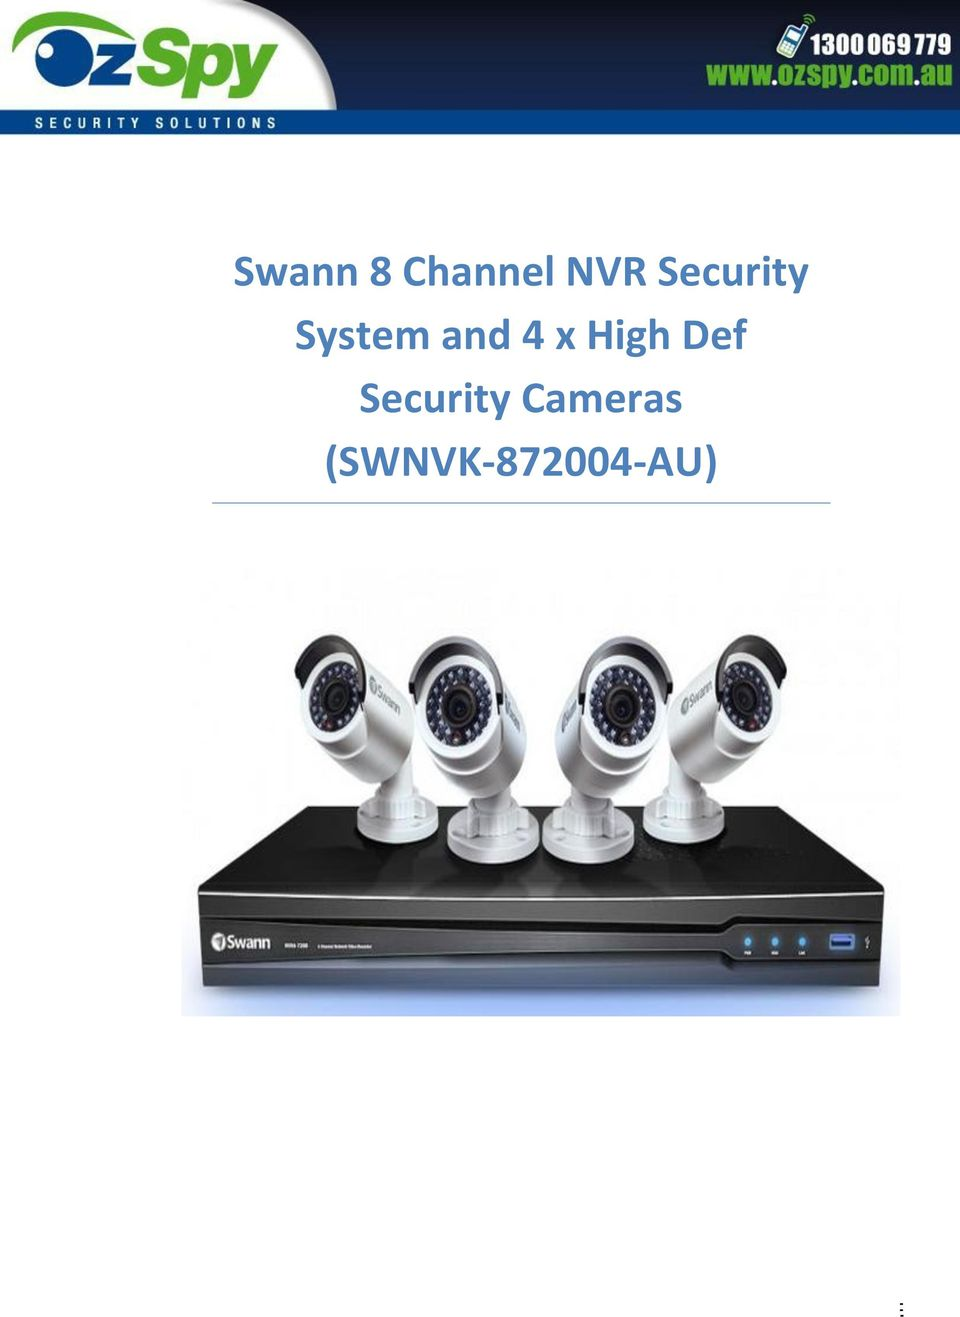 Swann 8 Channel NVR Security System and 4 x High Def